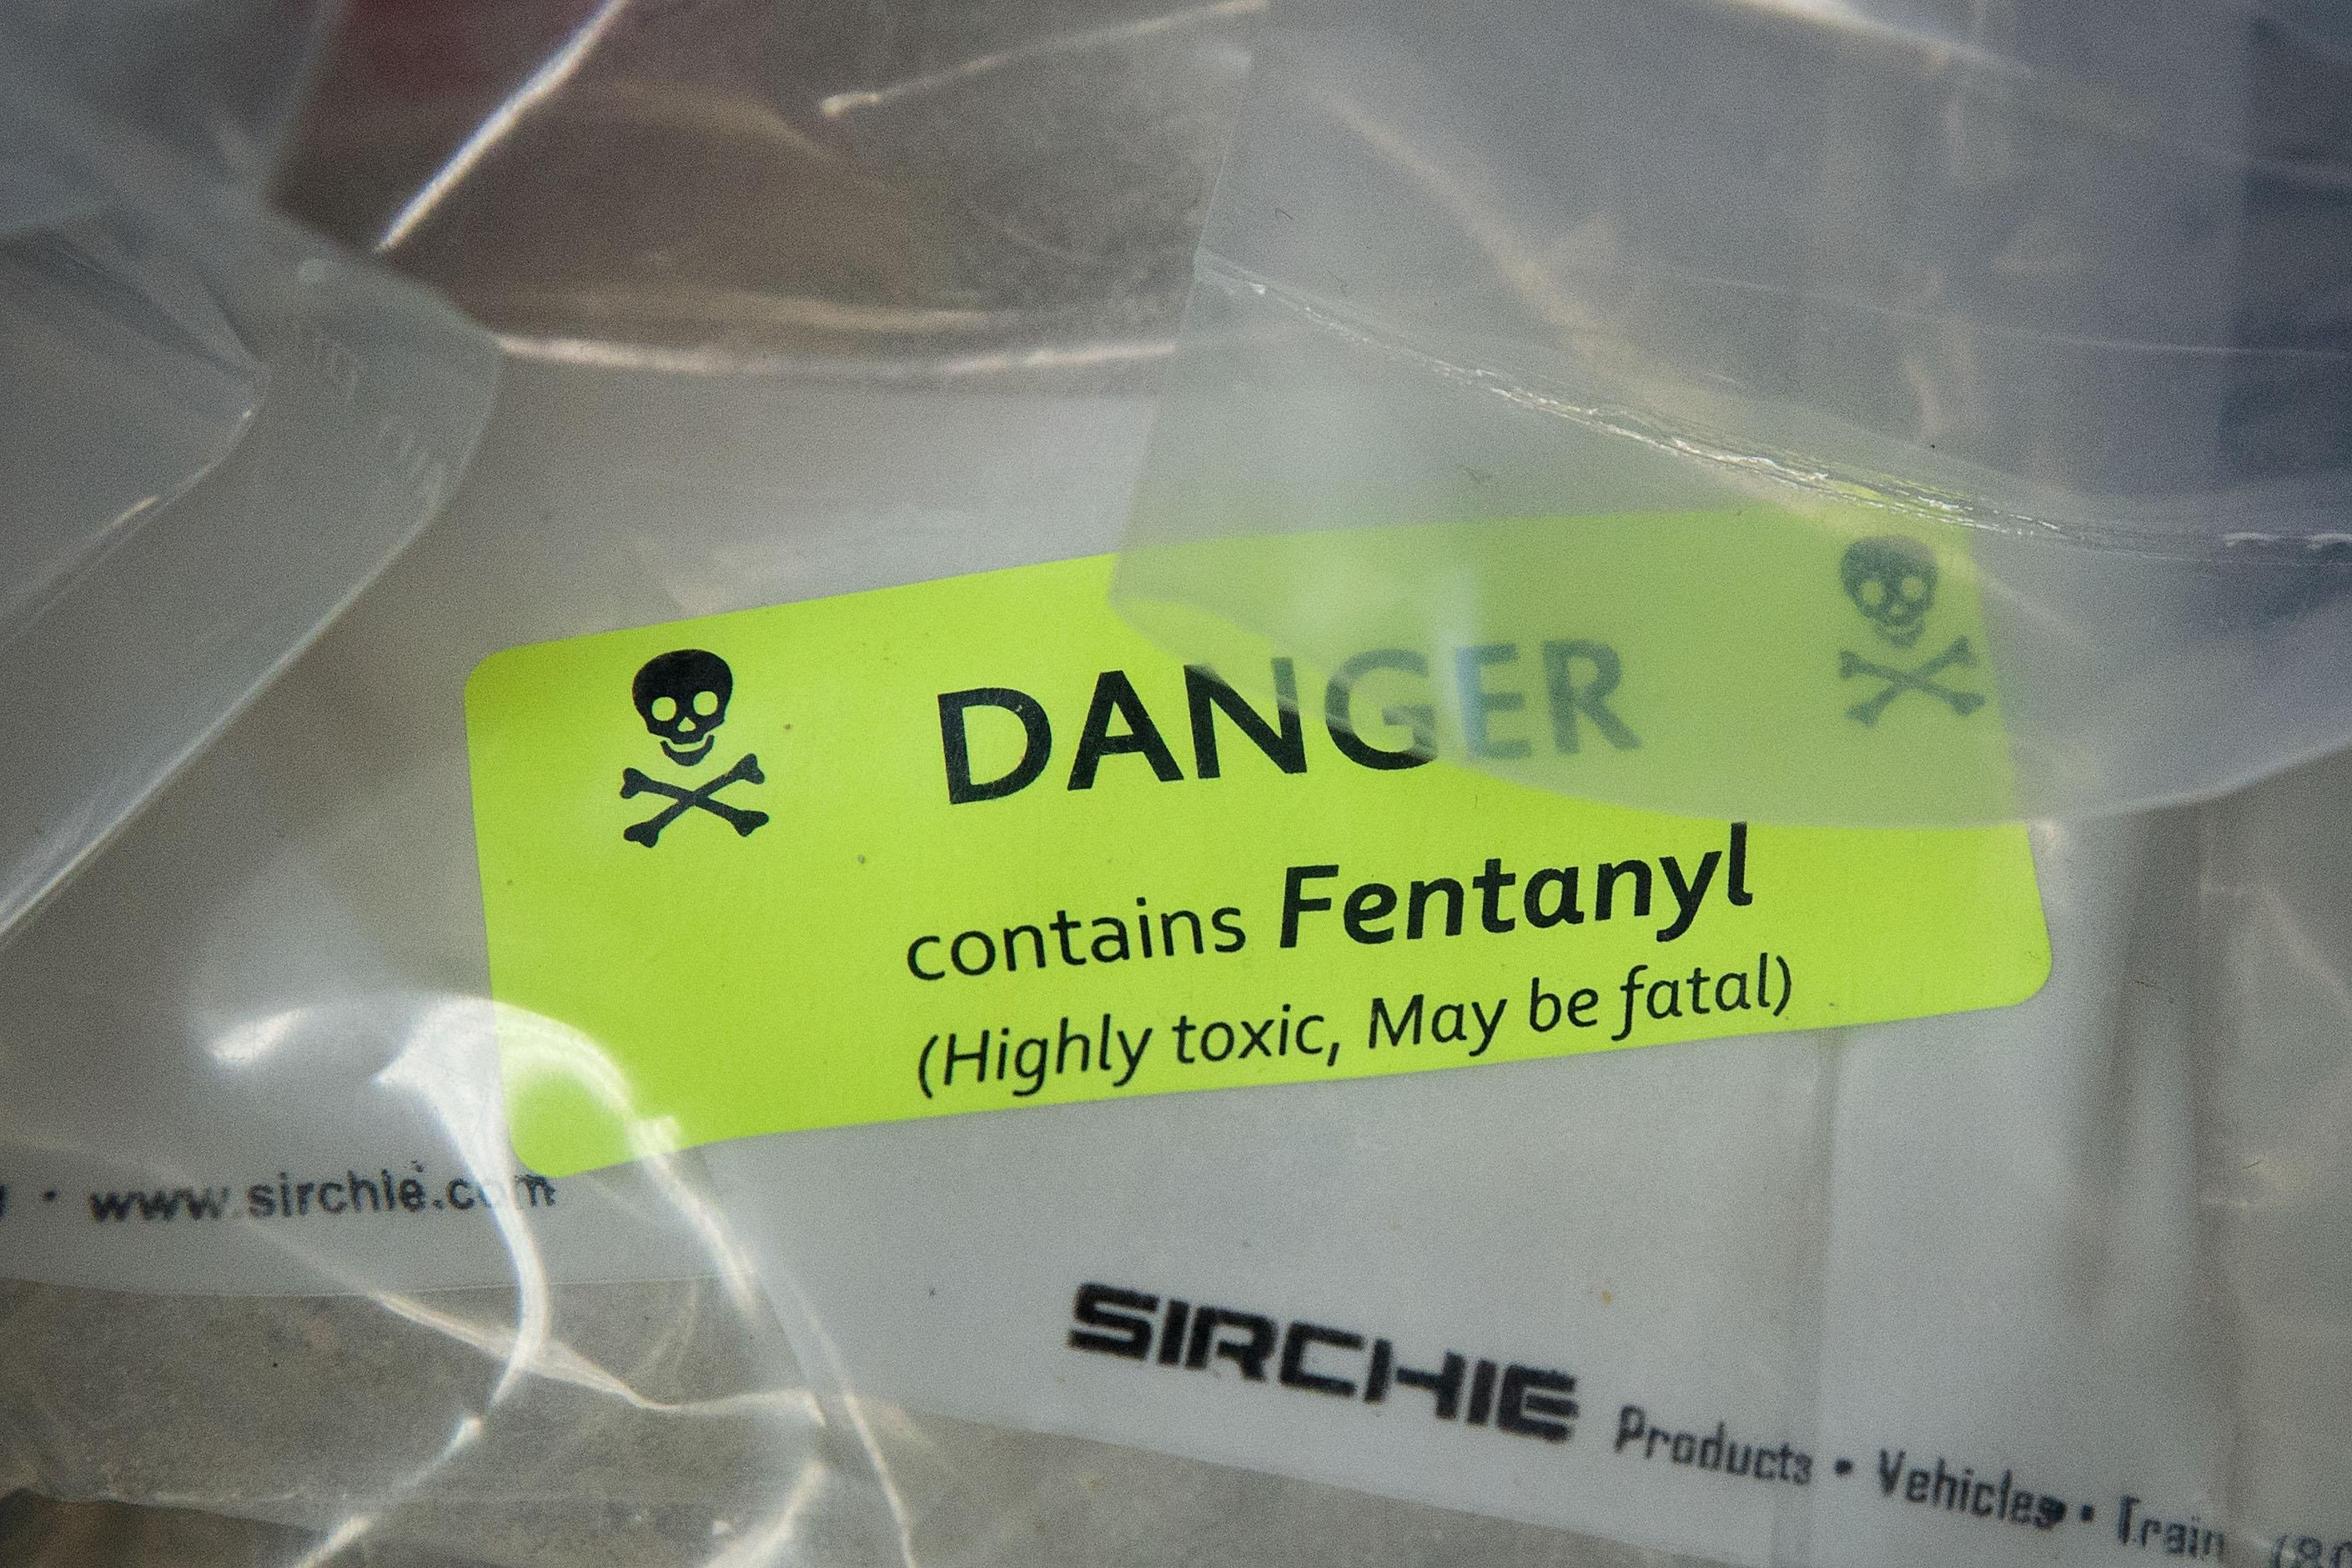 Almost 9 Pounds of Fentanyl Found Hidden In Wrapped Fish